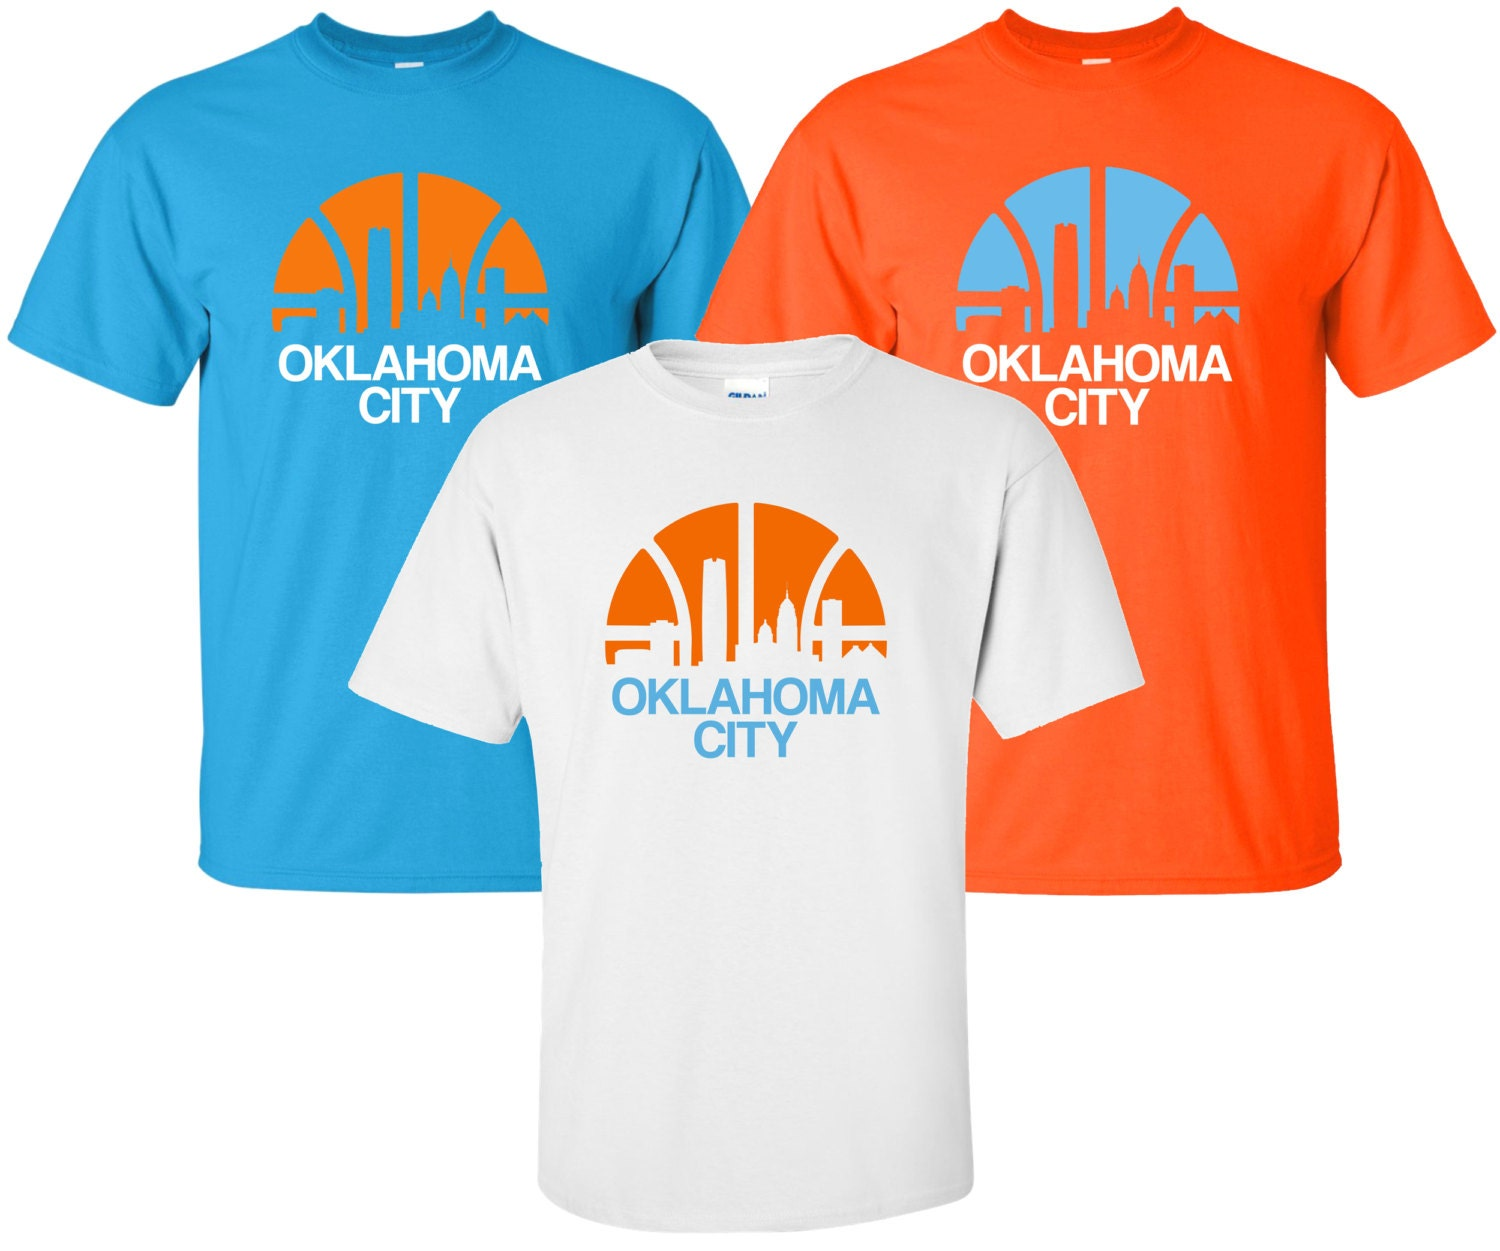 New oklahoma city t shirt available in sizes for Custom t shirts okc